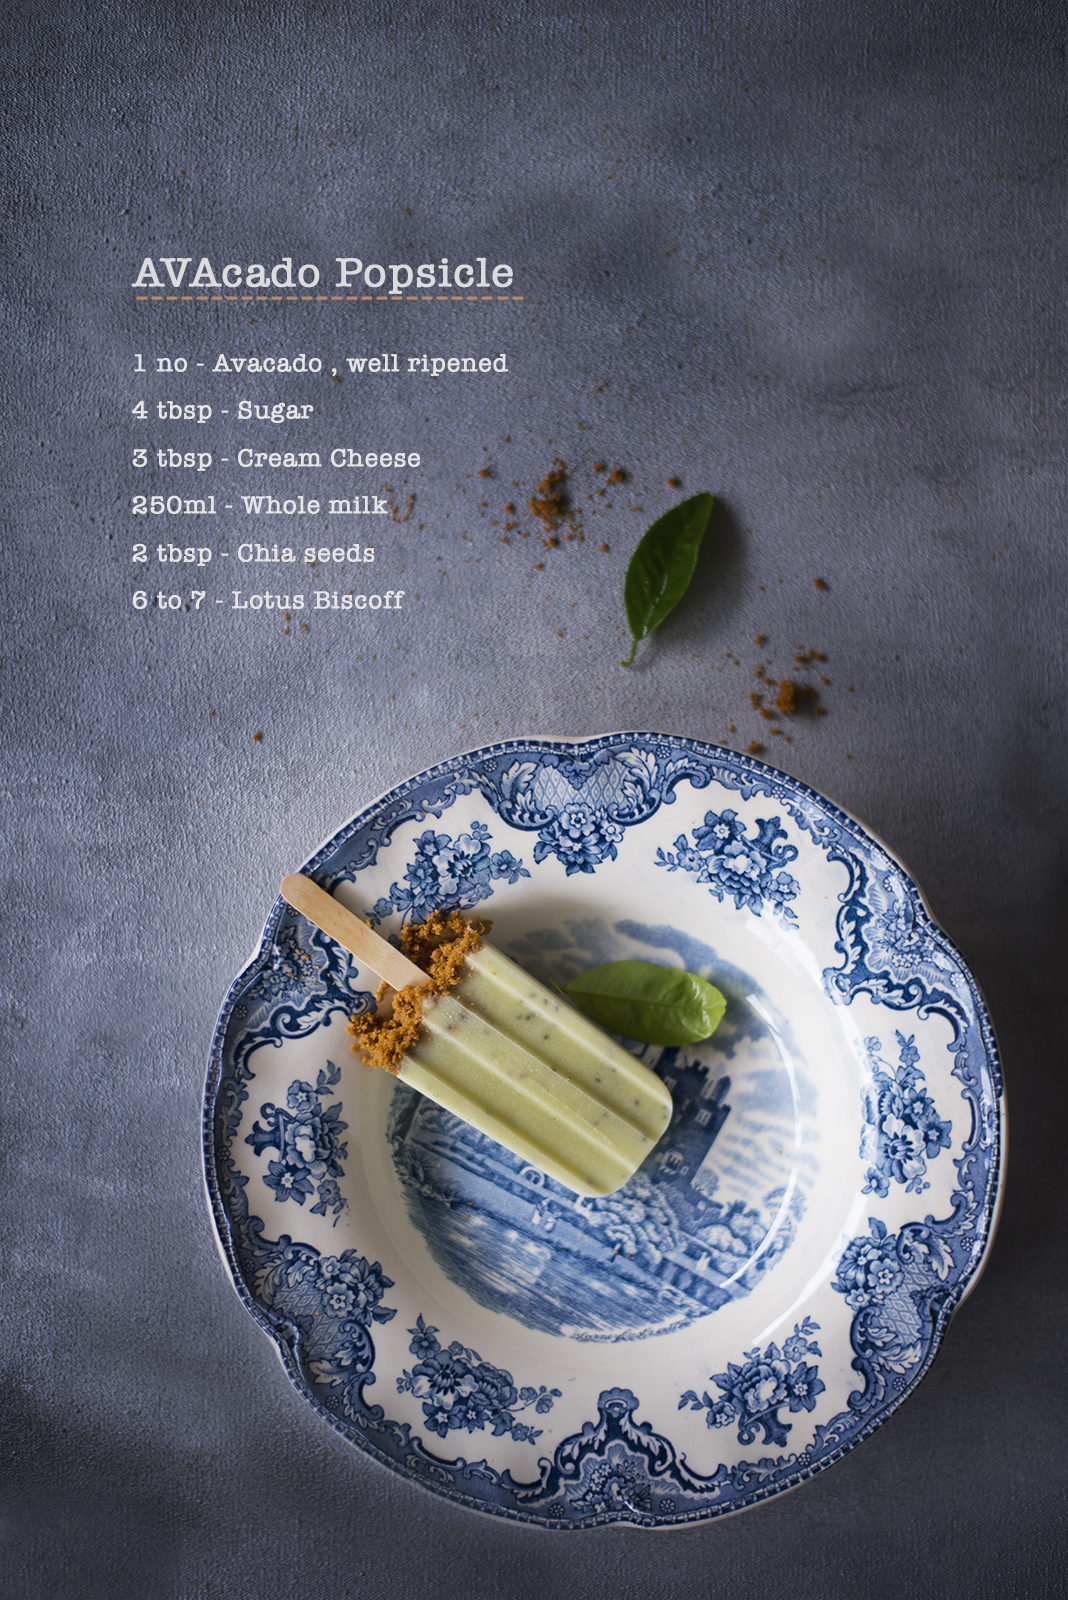 Avocado Chia Seed Popsicle is one of the most easiest and fun popsicle you can make. Avocado being creamy in nature makes this popsicle so much more creamier and rich.